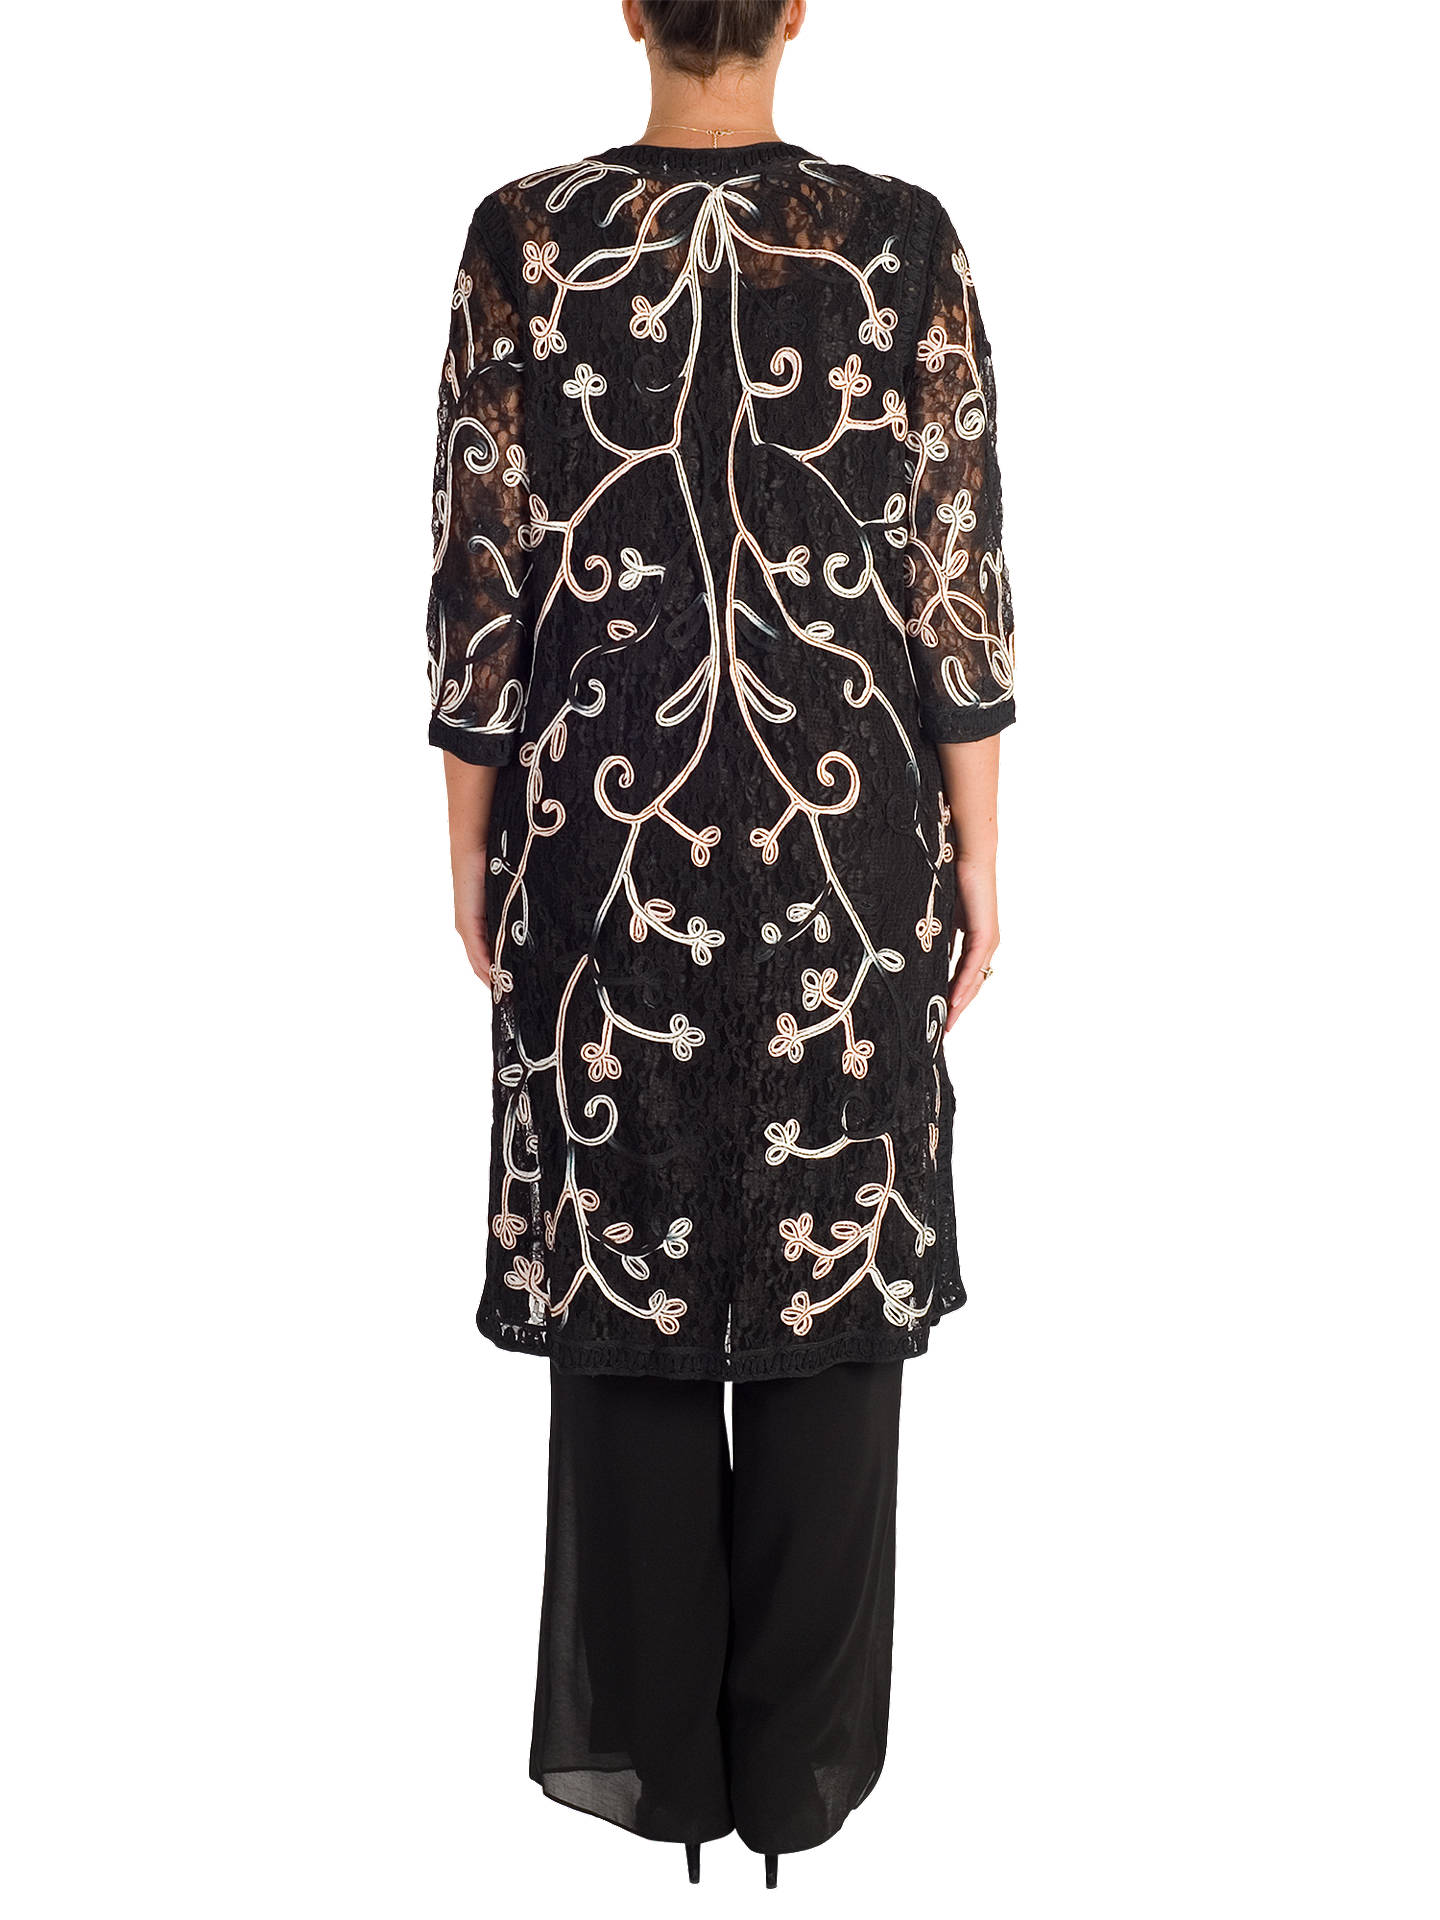 BuyChesca Cornelli Embroidered Lace Coat, Black/Pink, 12-14 Online at johnlewis.com